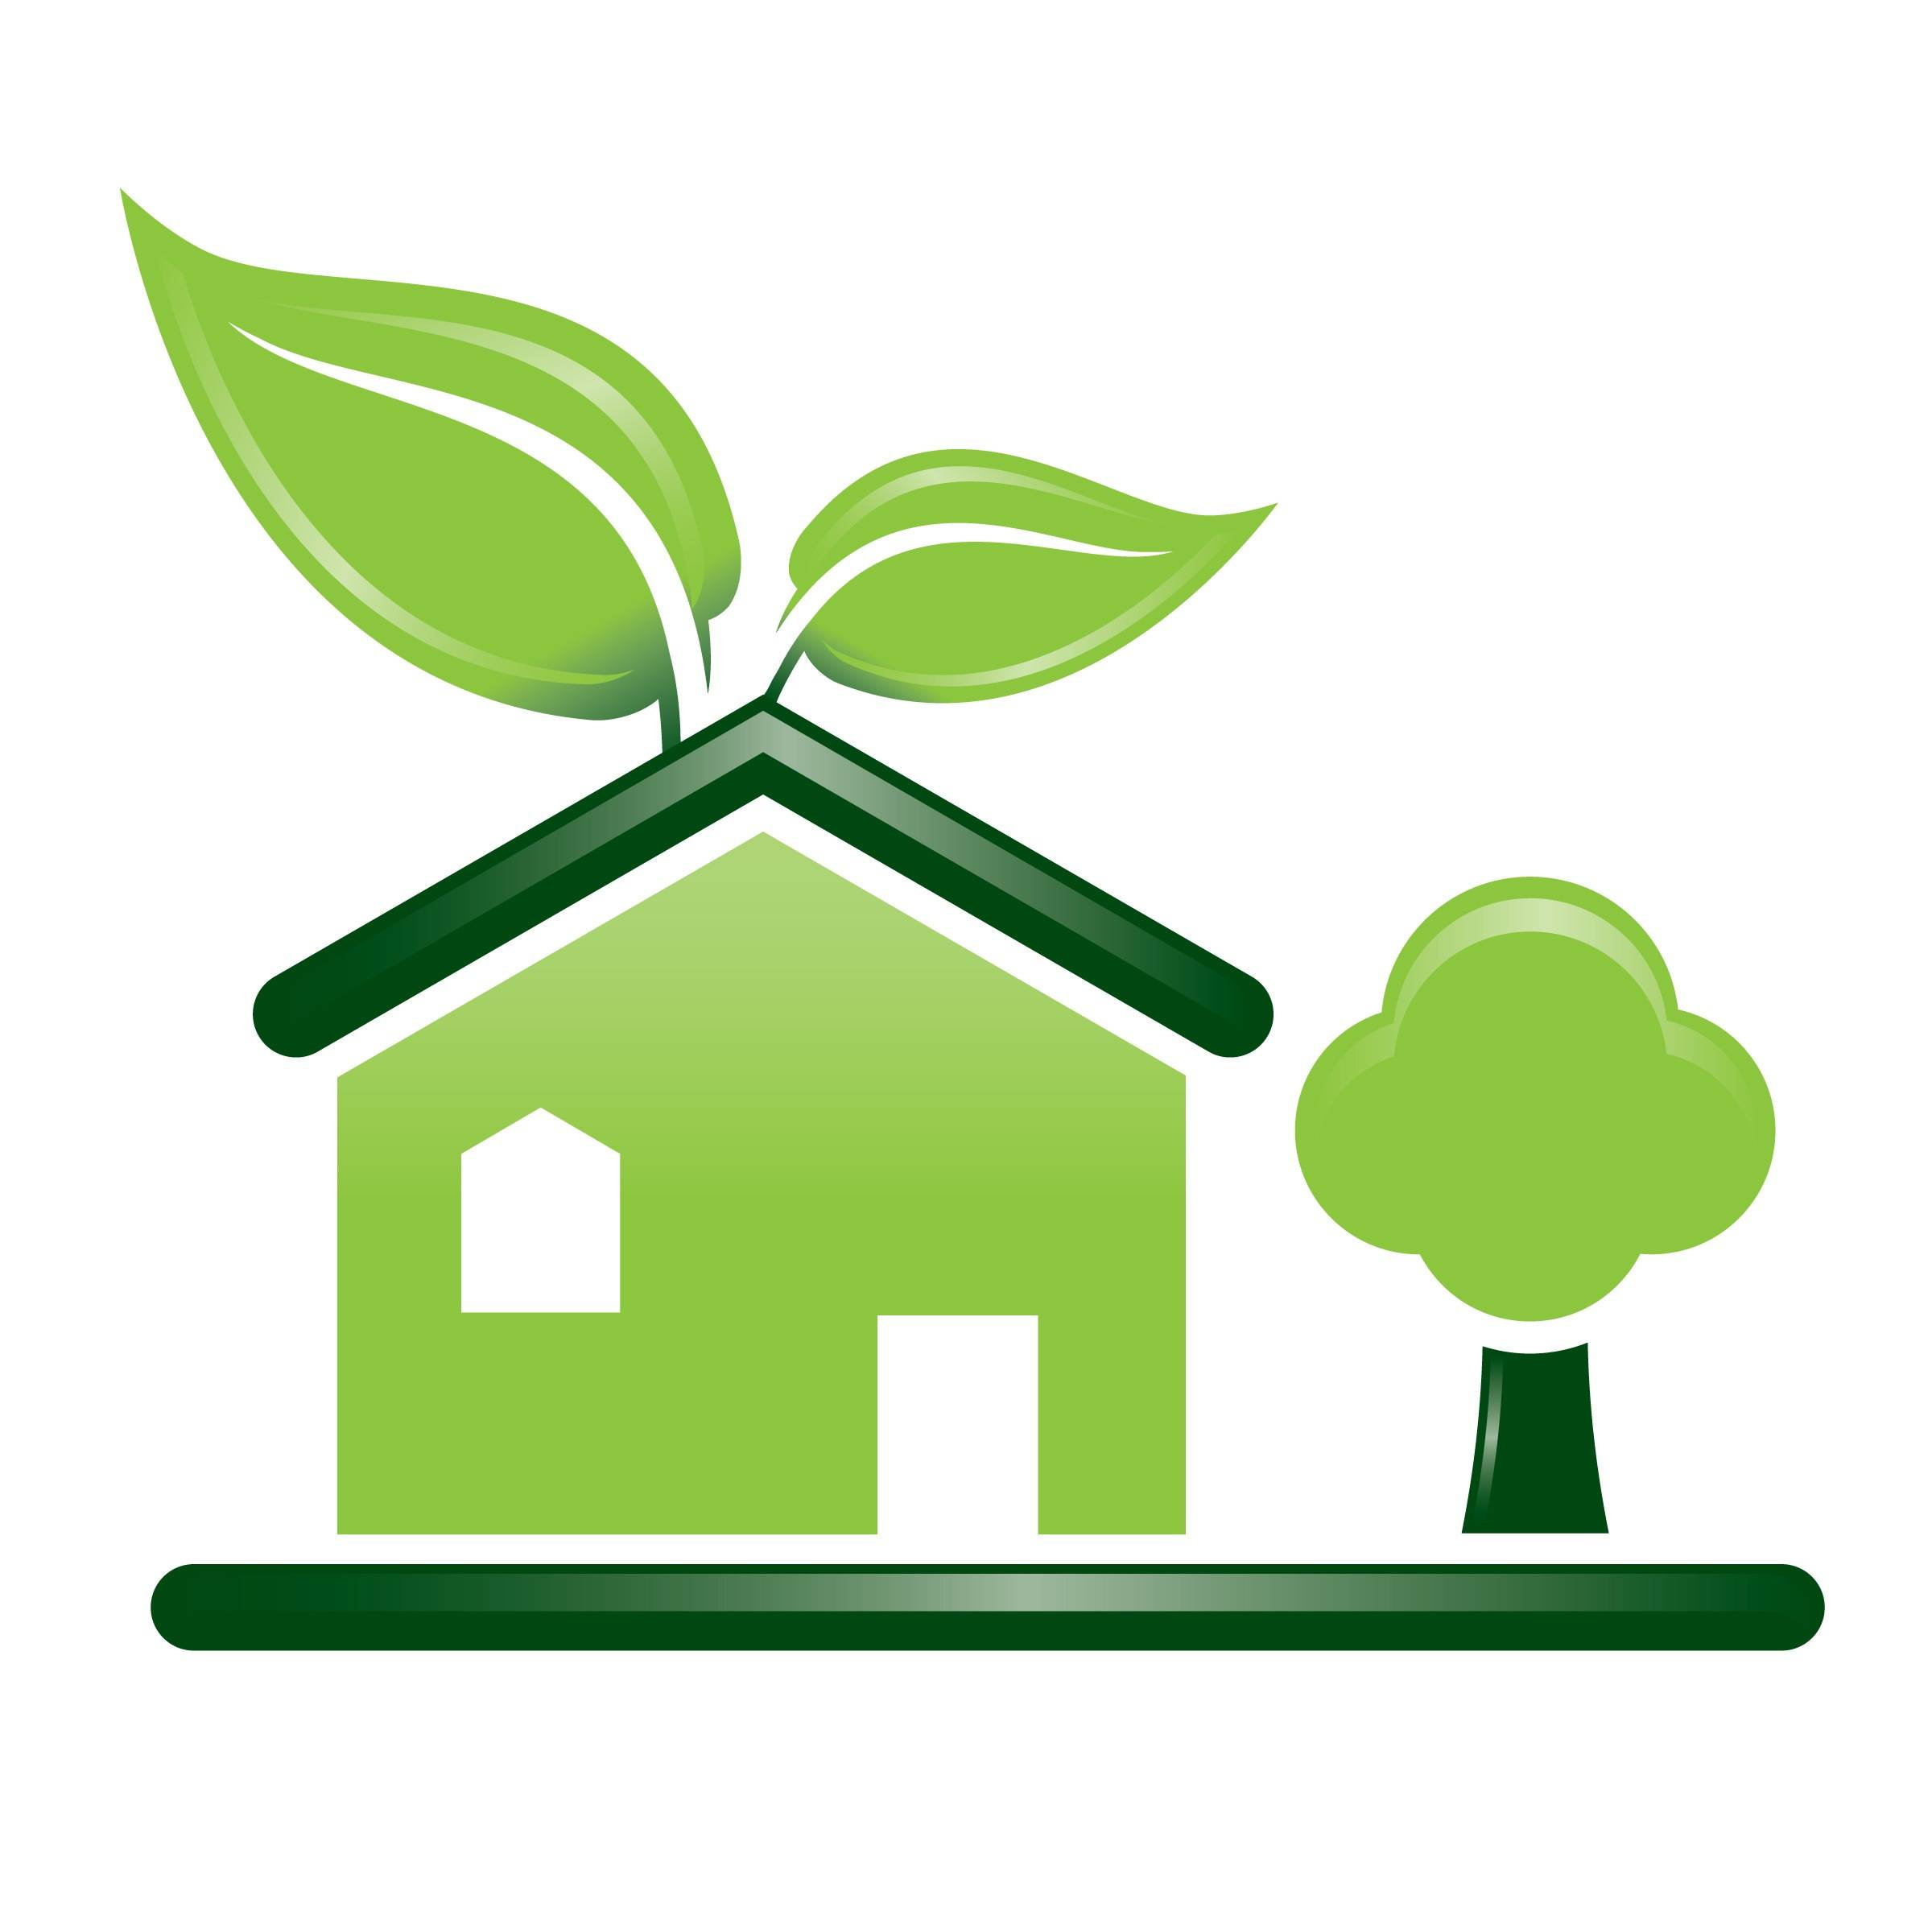 Green Your Home advantages of building green | america's best house plans blog